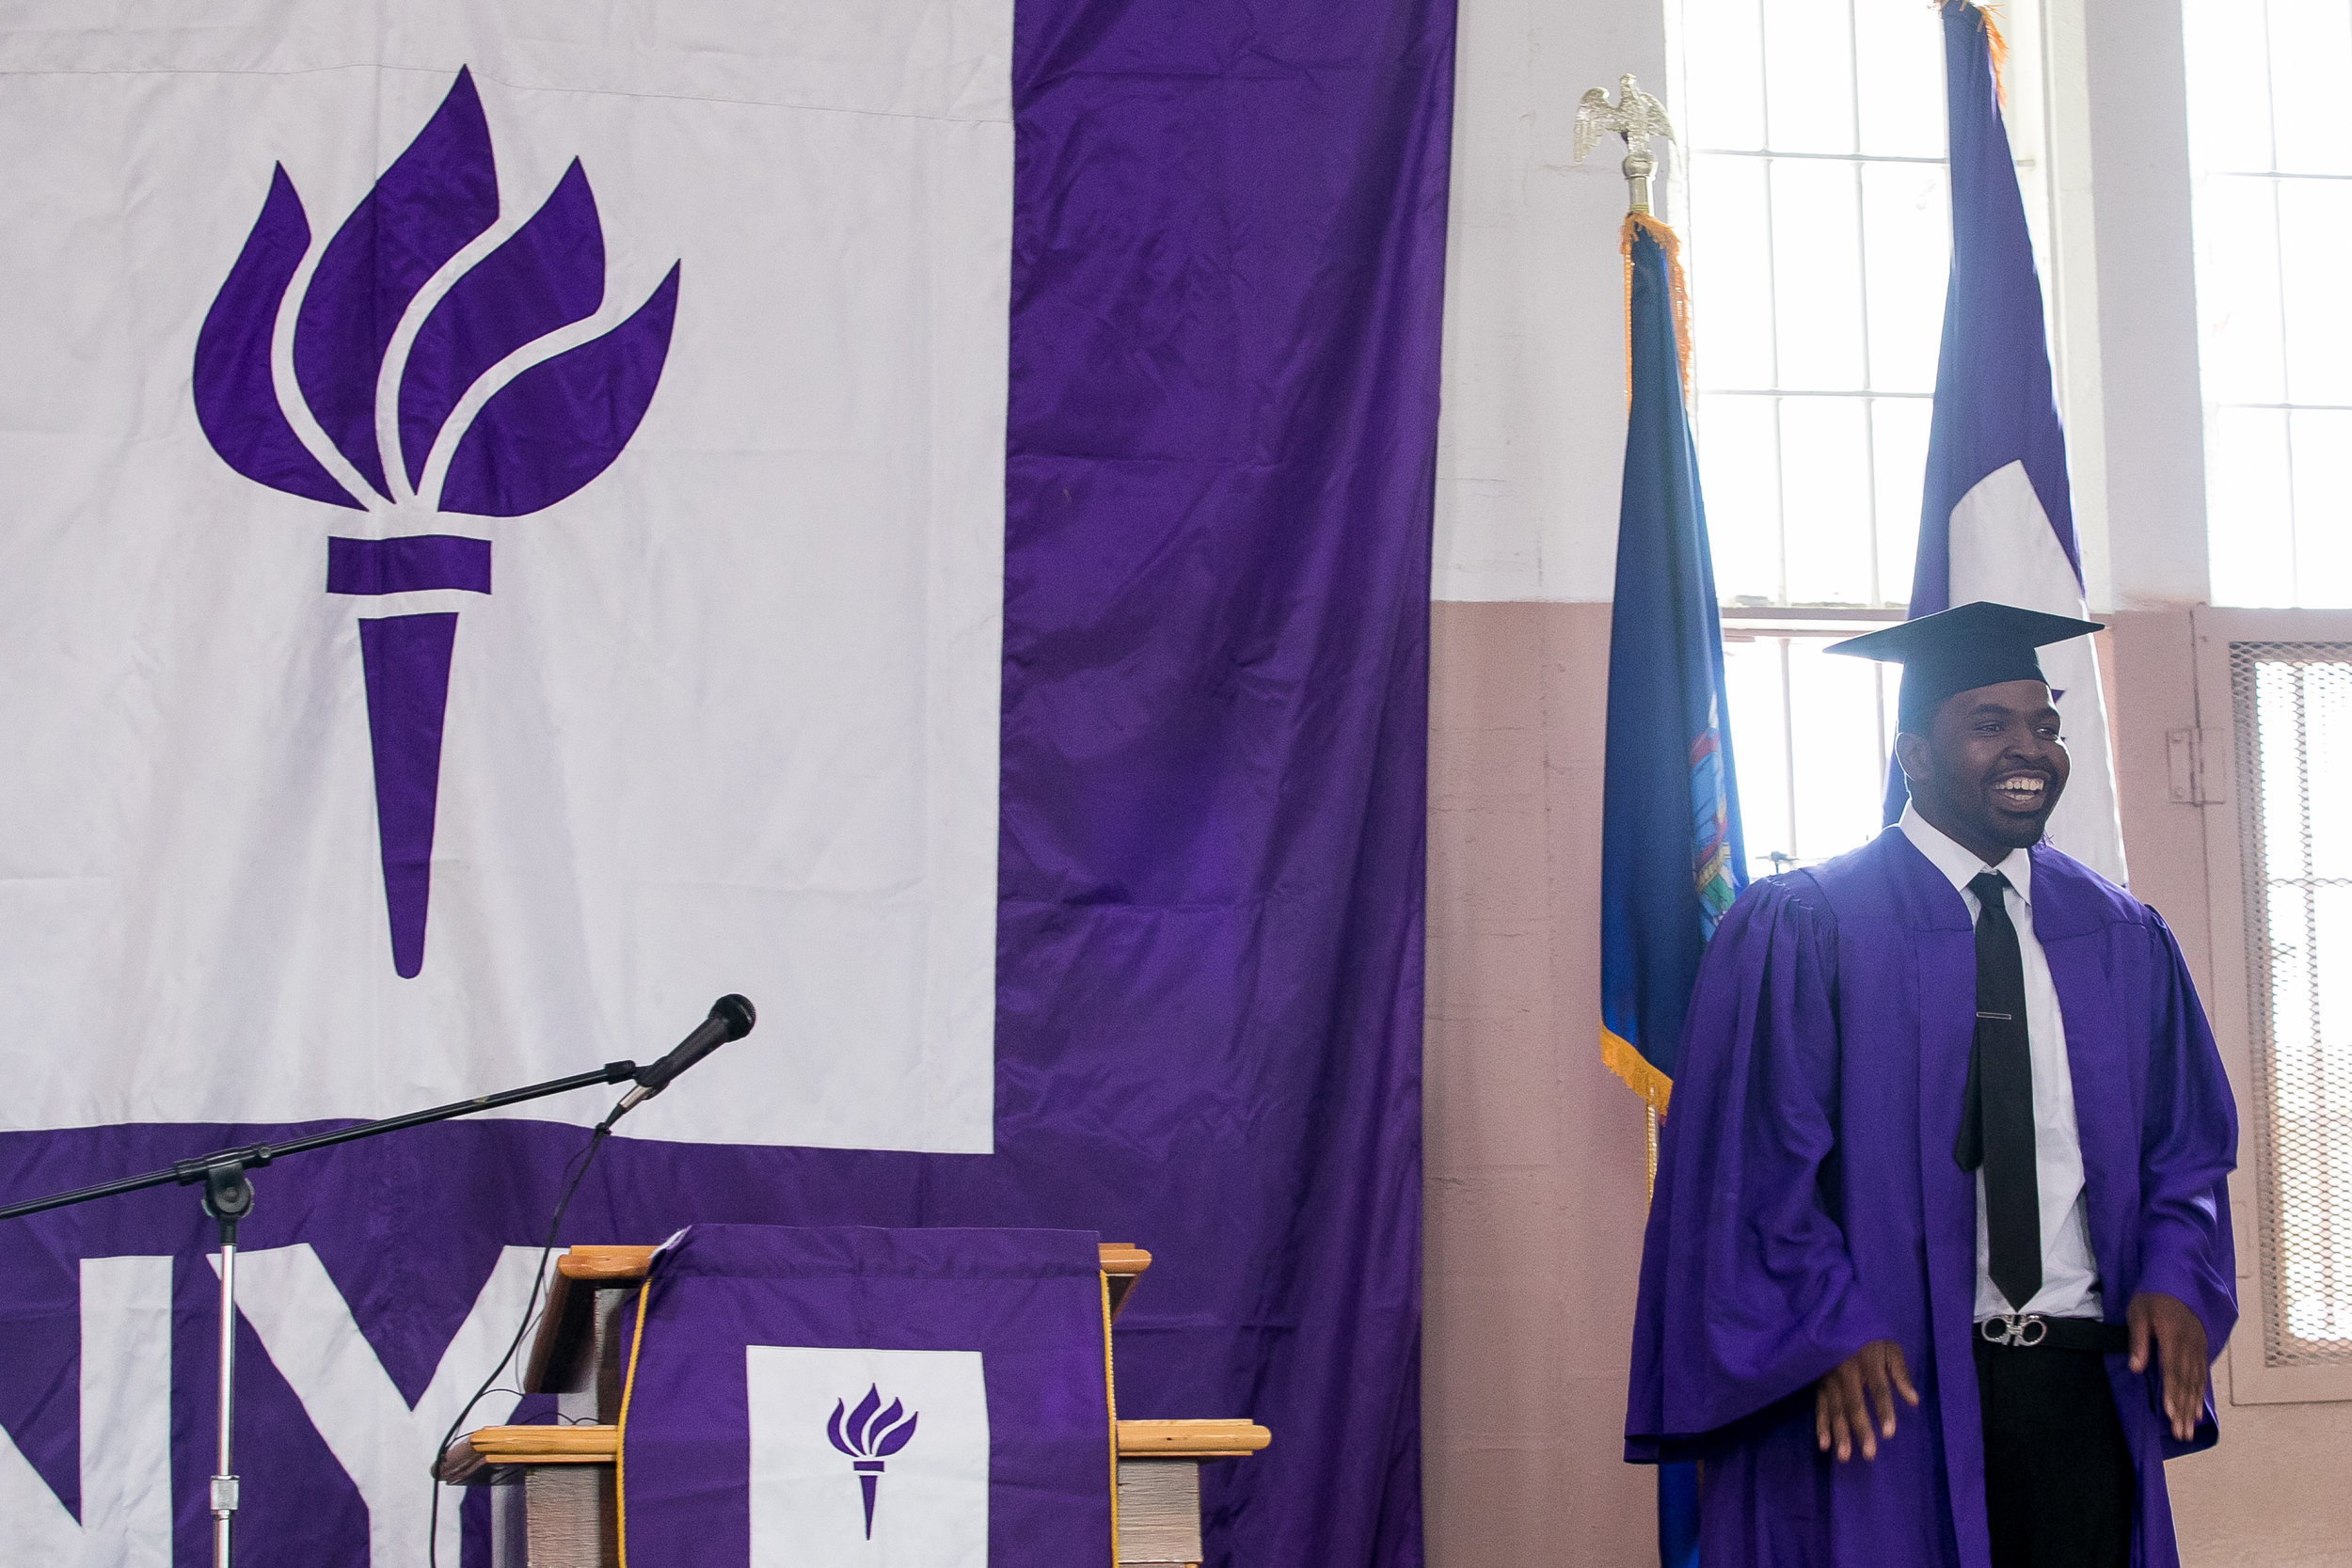 Vincent shows off his suit under his graduation gown. He has been released from Wallkill but came back for graduation, which he said was difficult, but he was glad that he did. He's working with program staff to continue his education at NYU's main campus.